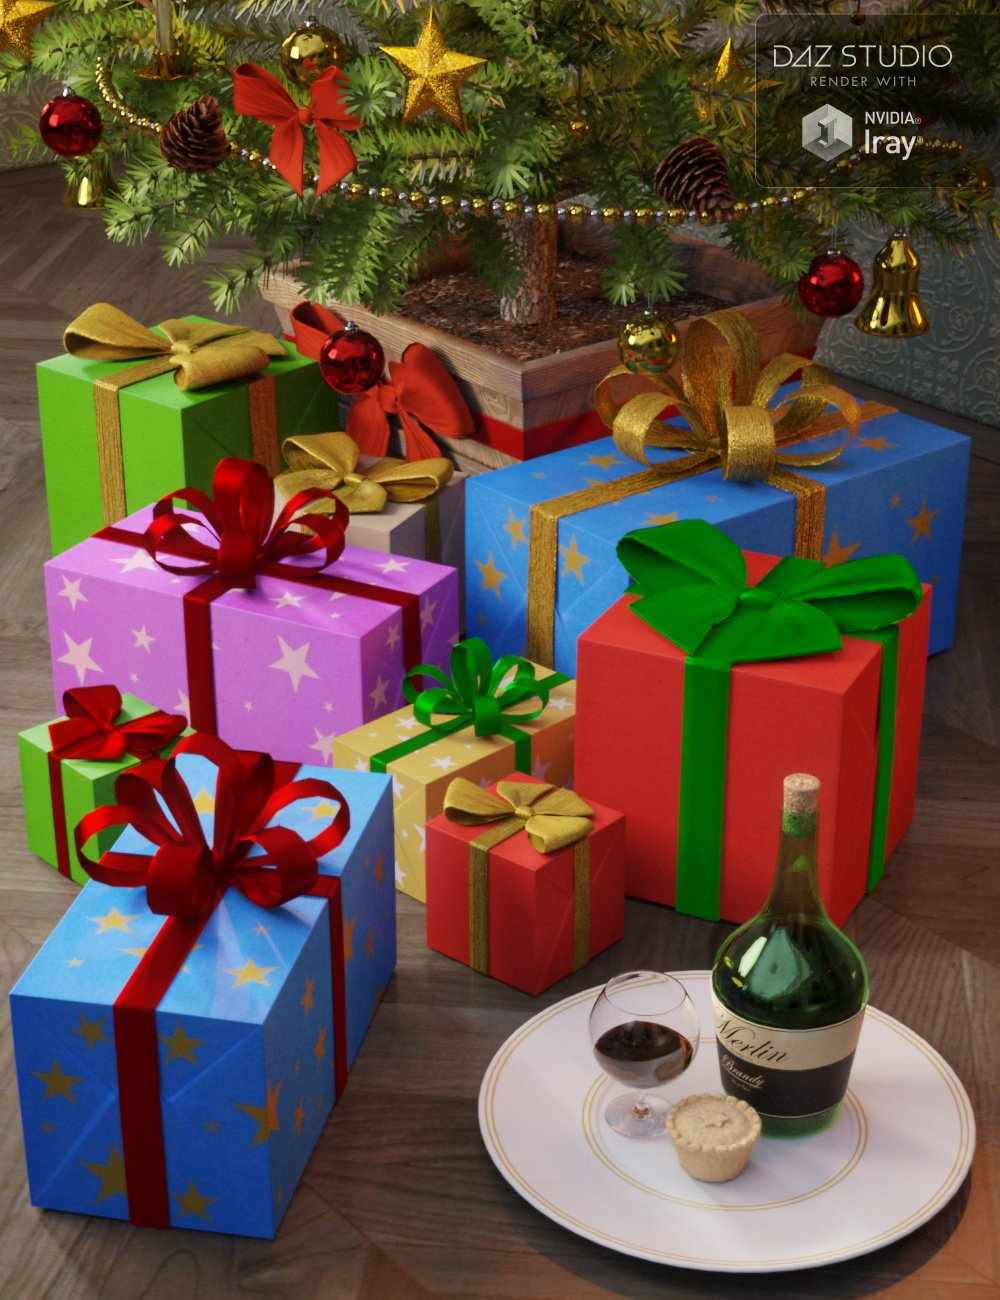 The Night Before Christmas by: Merlin Studios, 3D Models by Daz 3D